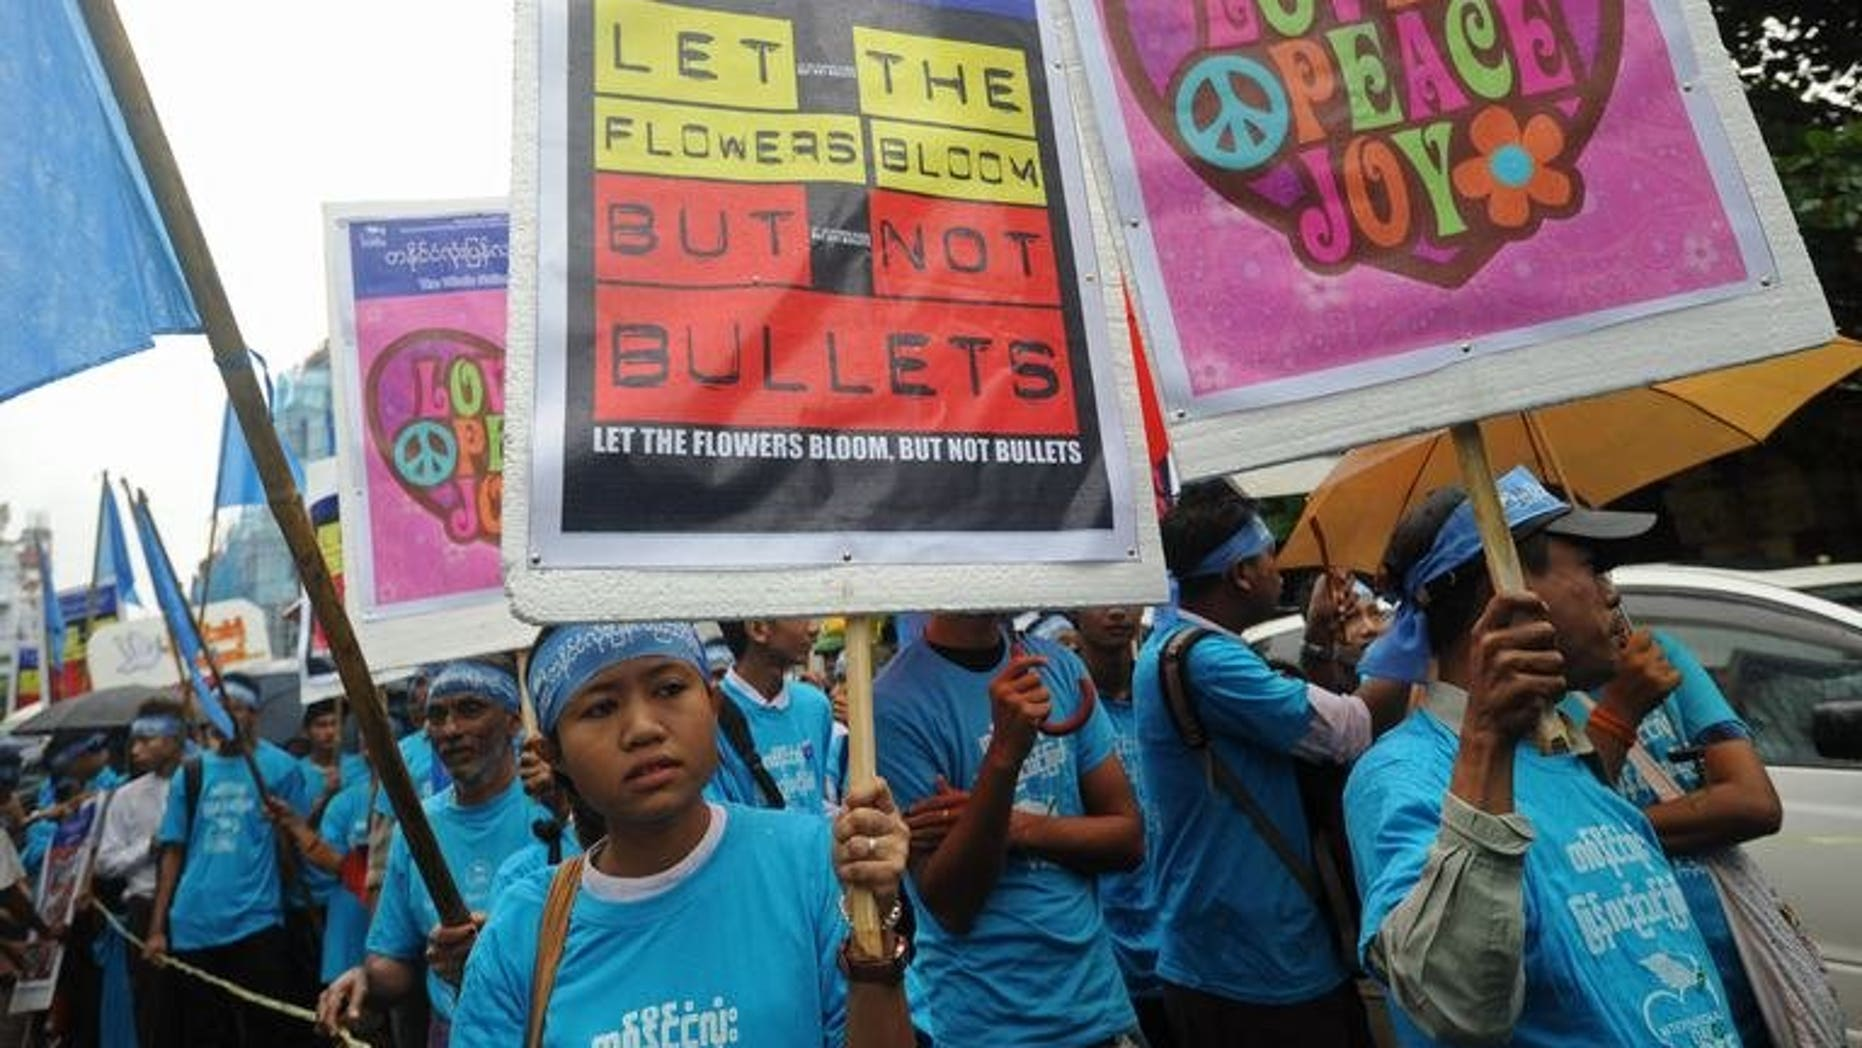 Myanmar activists hold placards as they march through Yangon, on September 21, 2013. Activists have praised Myanmar authorities for allowing a peace march through Yangon calling for an end to the nation's civil conflicts, after several people were charged for rallying without permission last year.